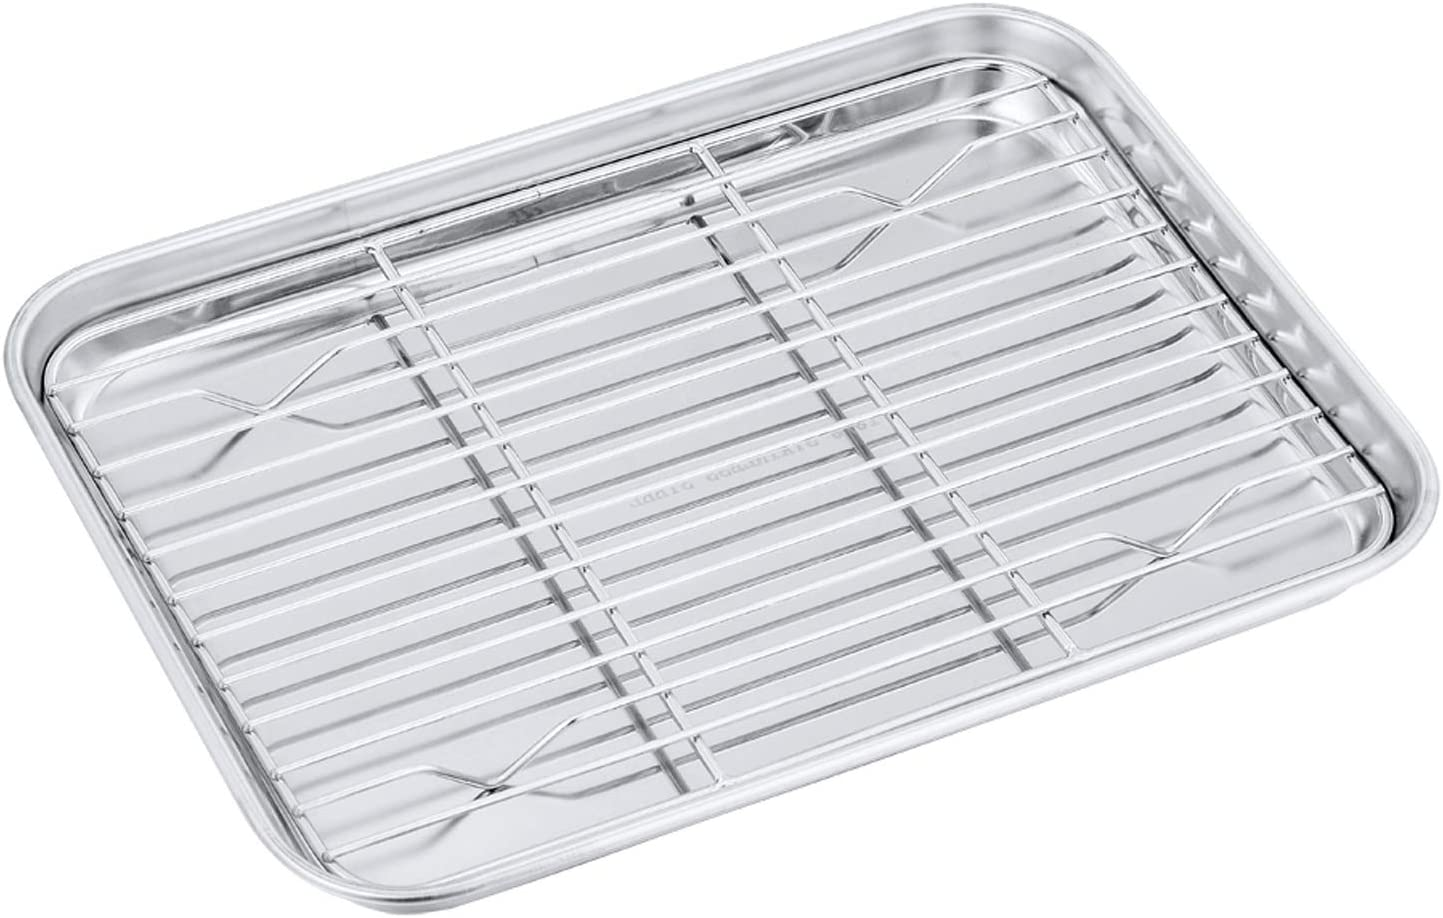 Toaster Oven Pan with Rack Set, P&P CHEF Stainless Steel Broiler Pan with Cooling Rack, Mini Rectangle 9''x 7''x1'', Non Toxic & Heavy Duty, Mirror Finish & Dishwasher Safe